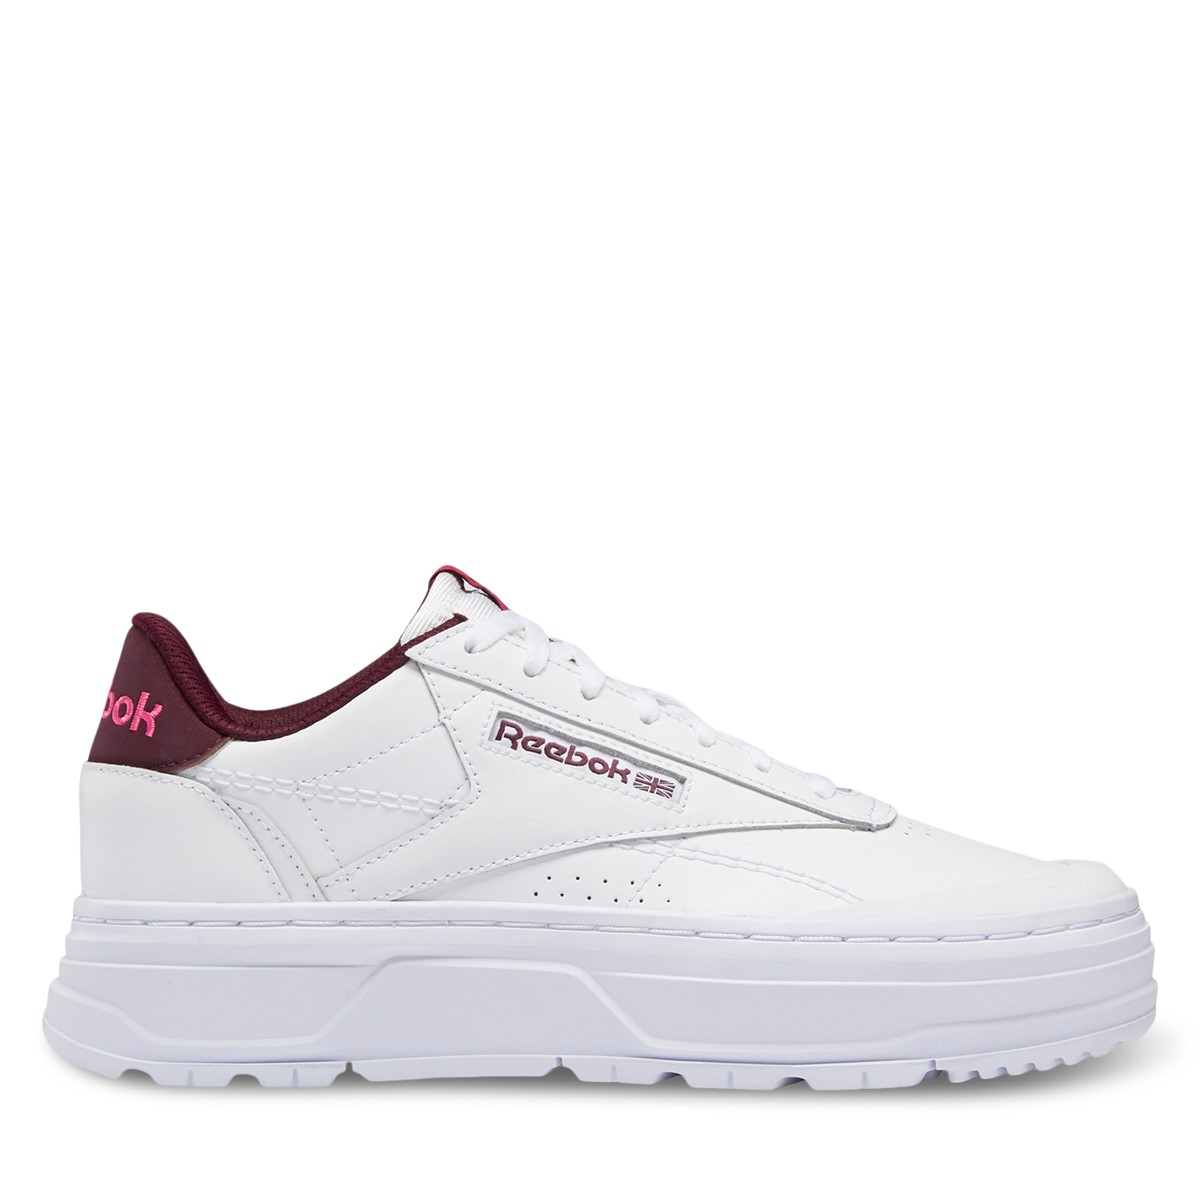 Women's Club C Double GEO Platform Sneakers in White/Red